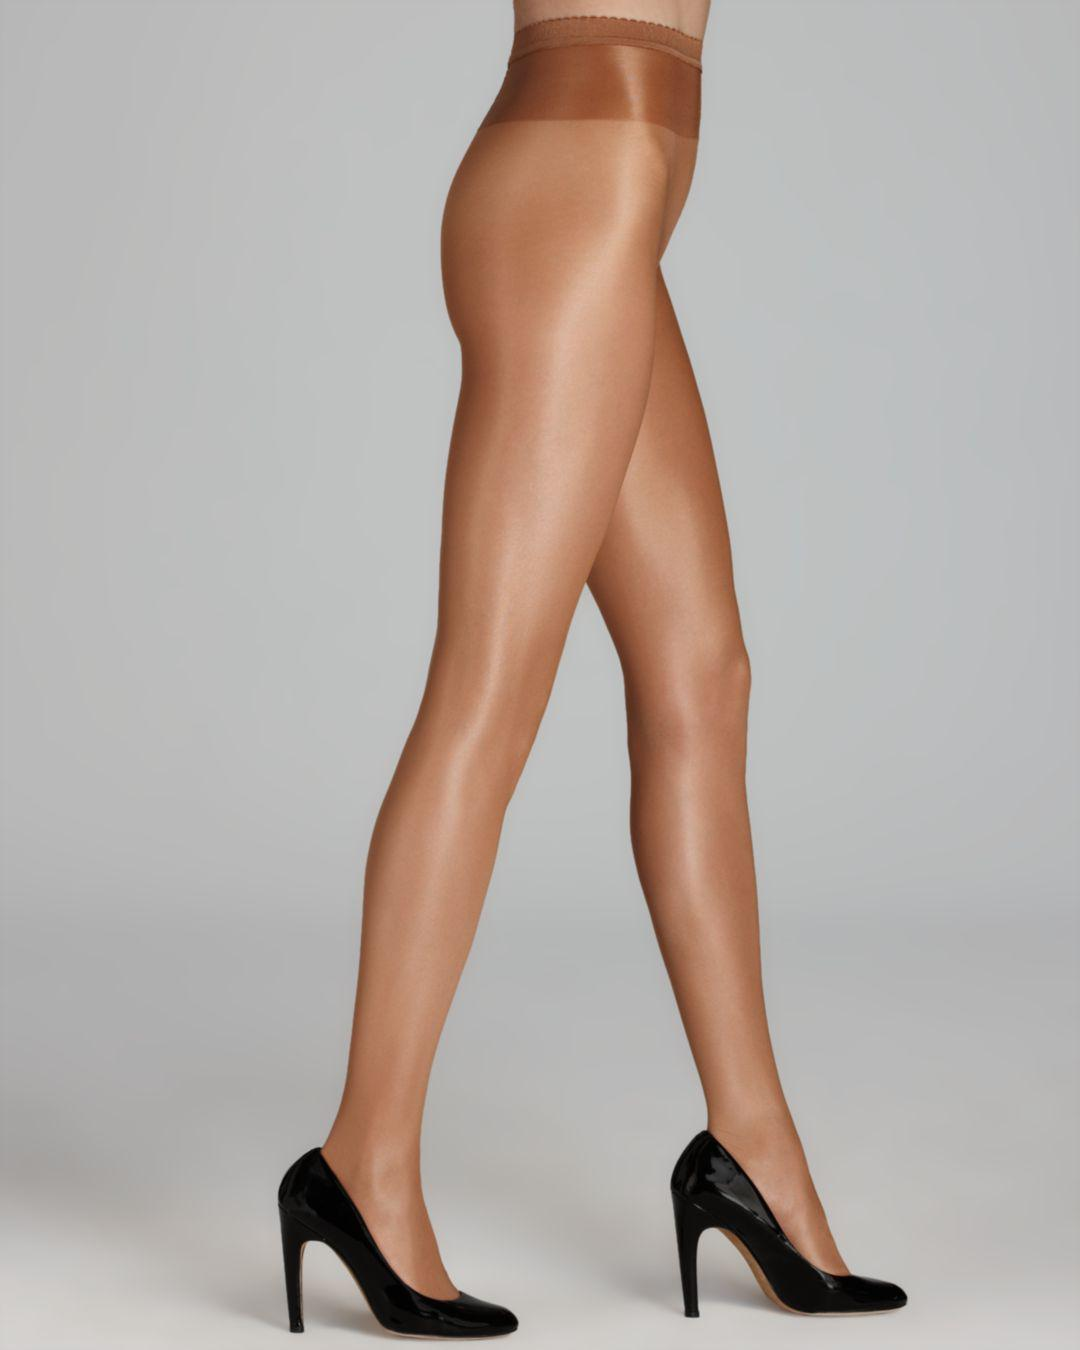 7ef6b53d7 Wolford. Women s Neon 40 Tights